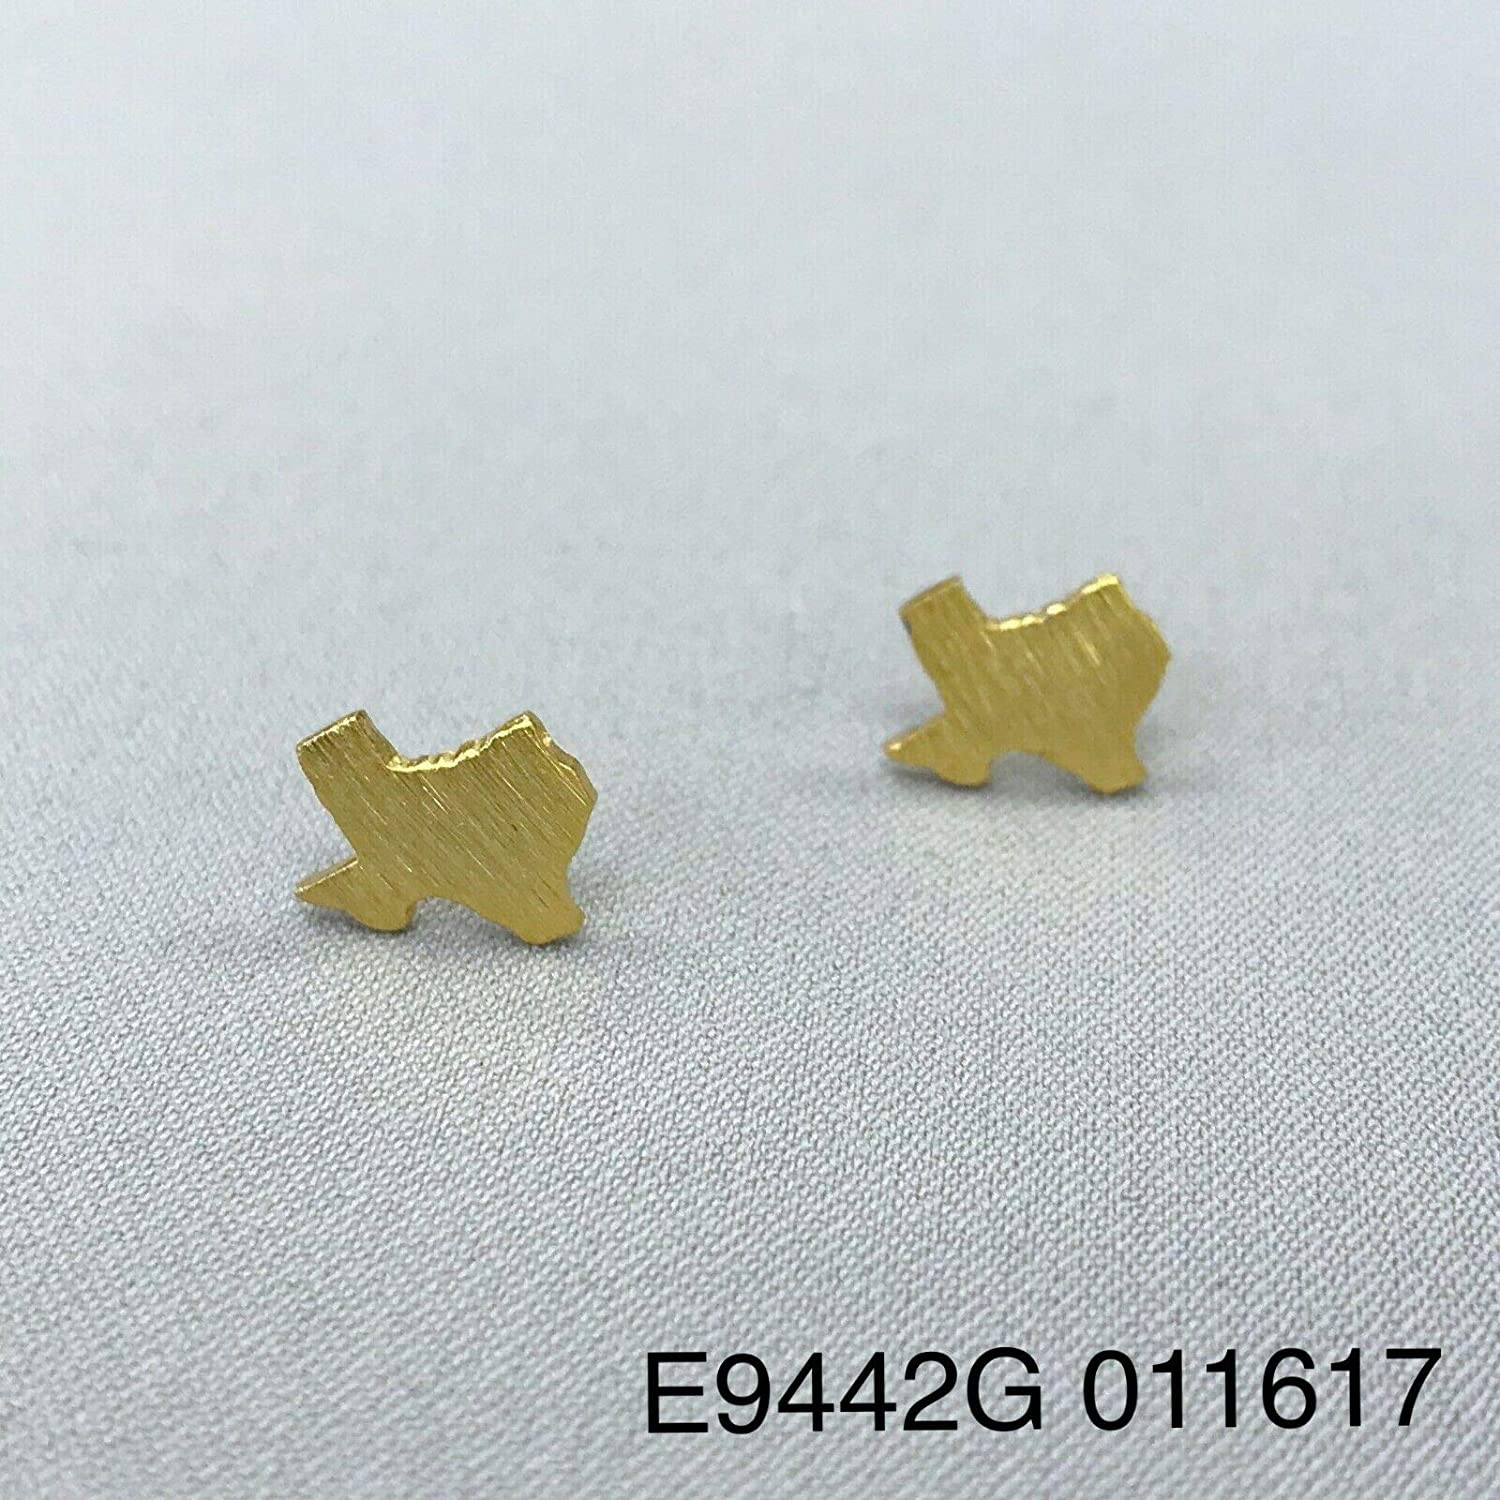 Matte Gold Finished Scratched Mini State of Texas Shape Stud Post Earrings